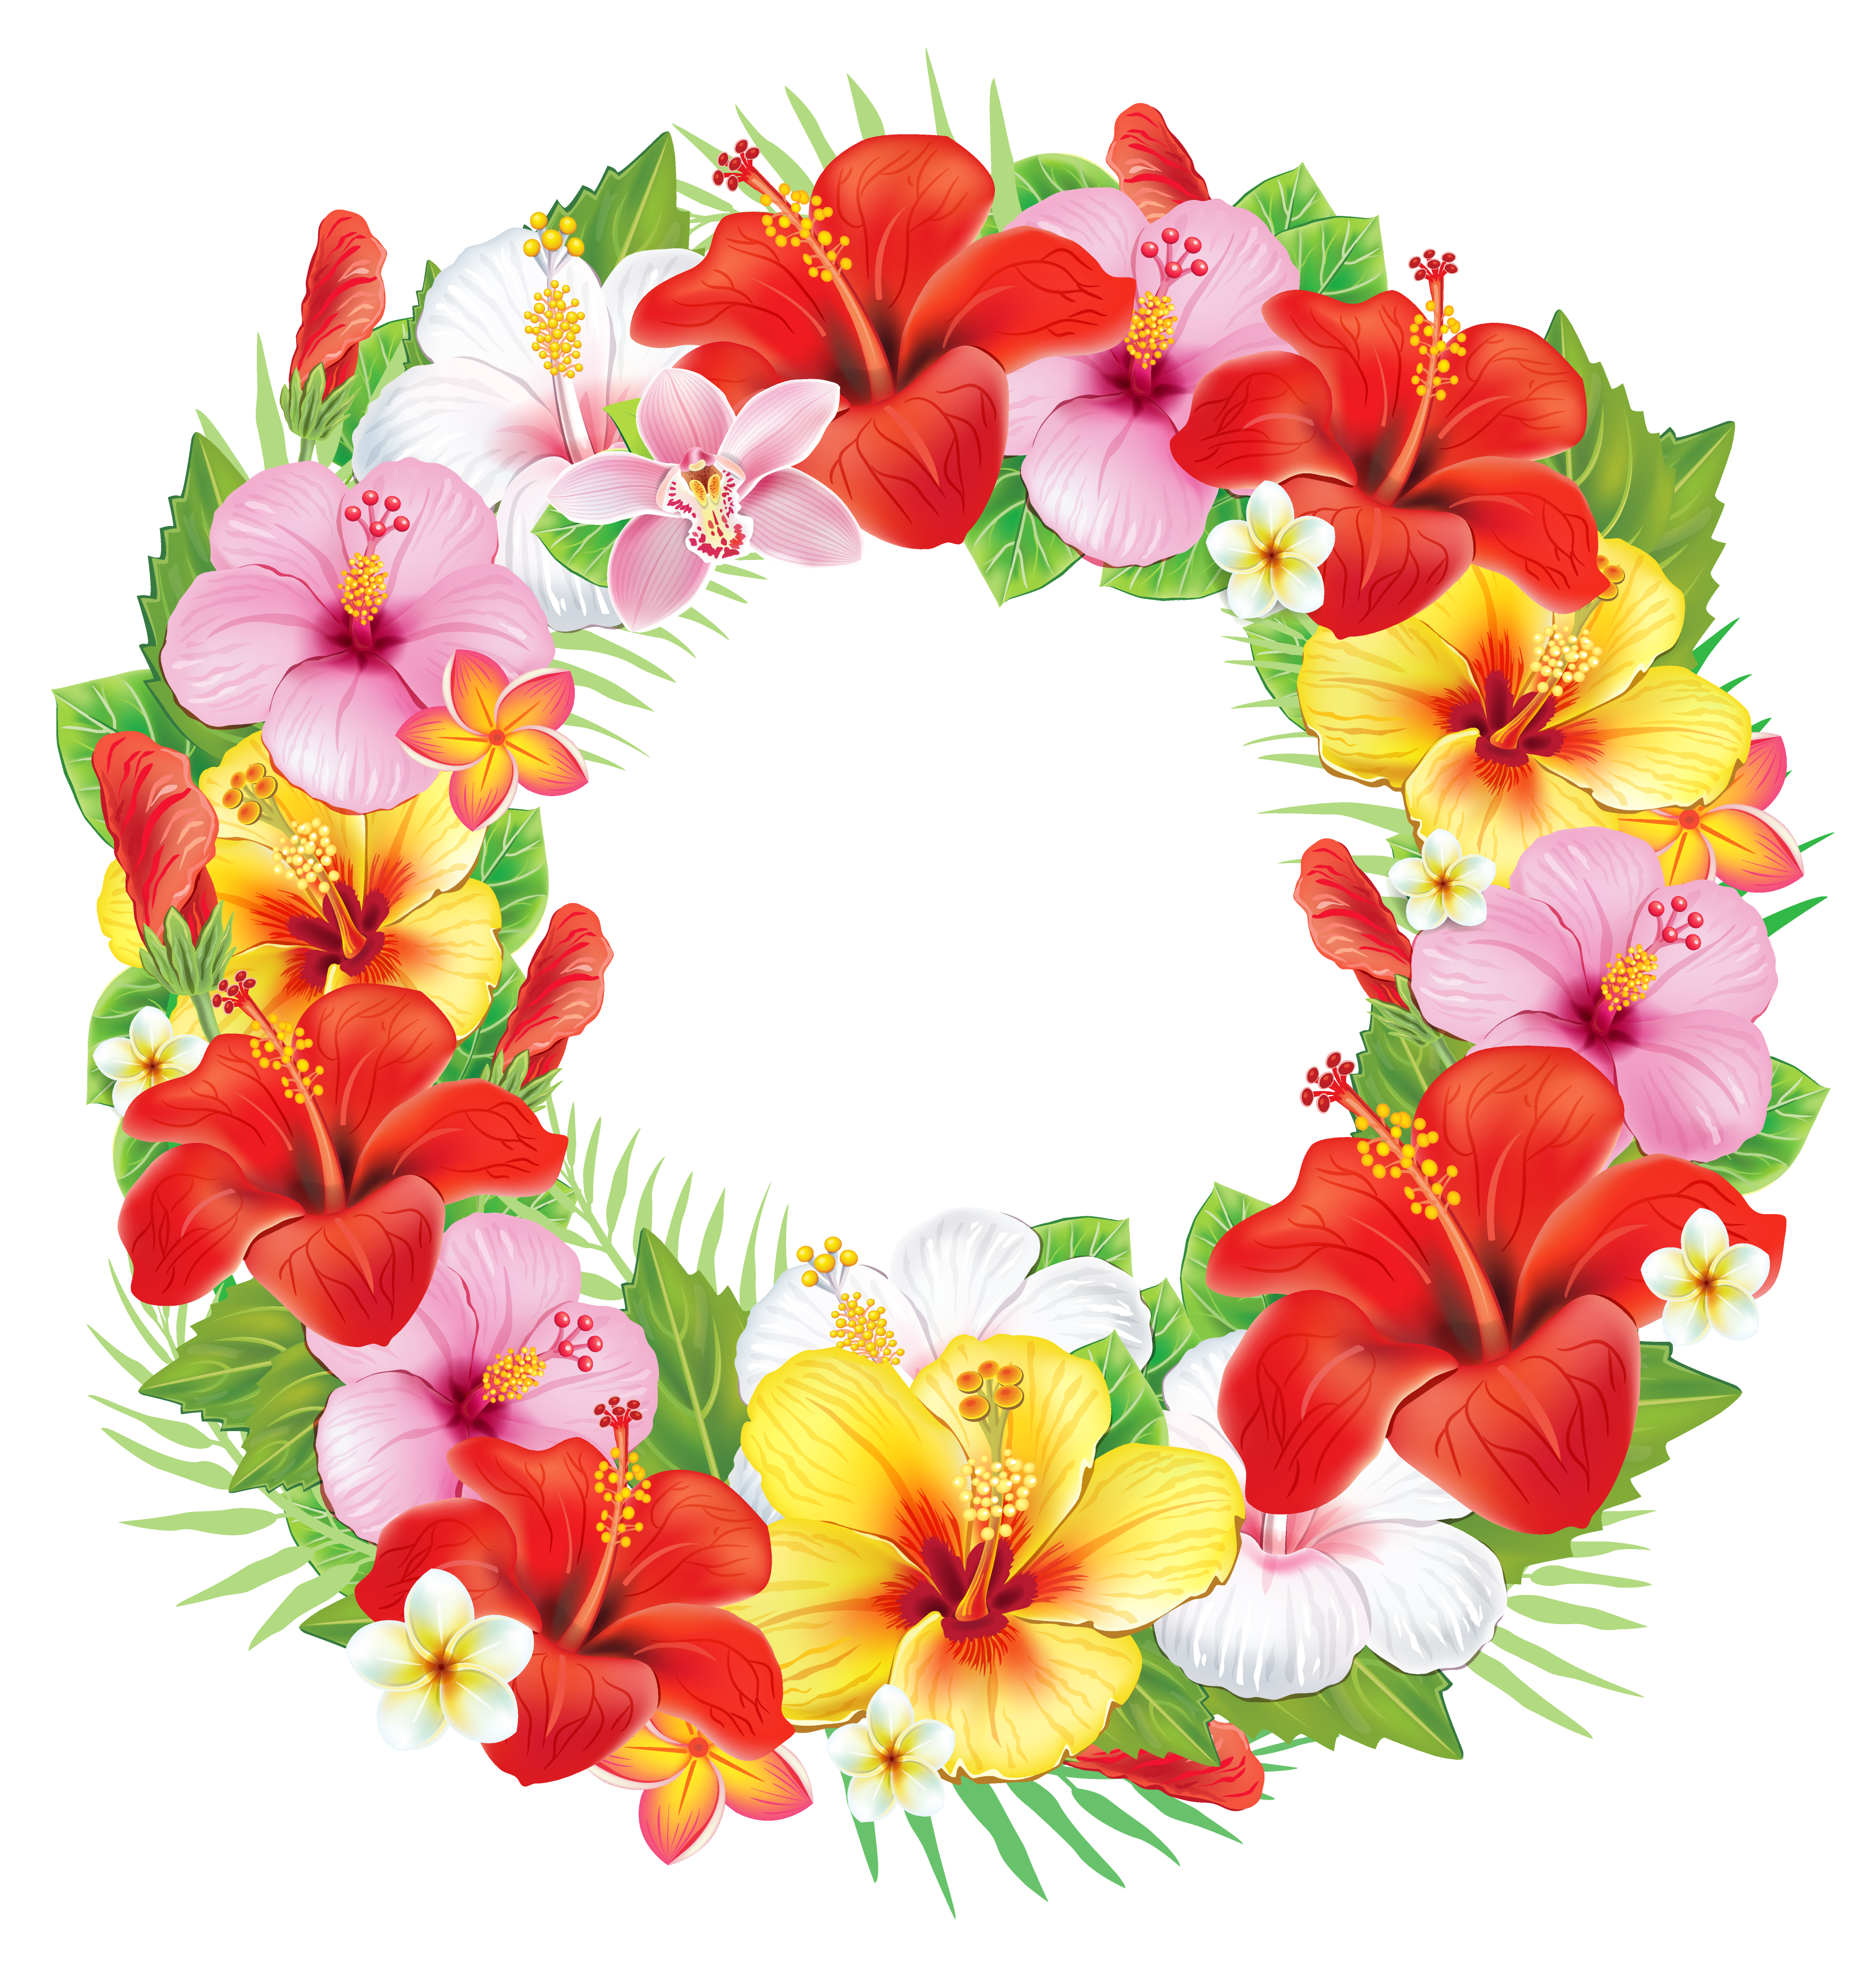 Flower clipart wreath. Of exotic flowers png